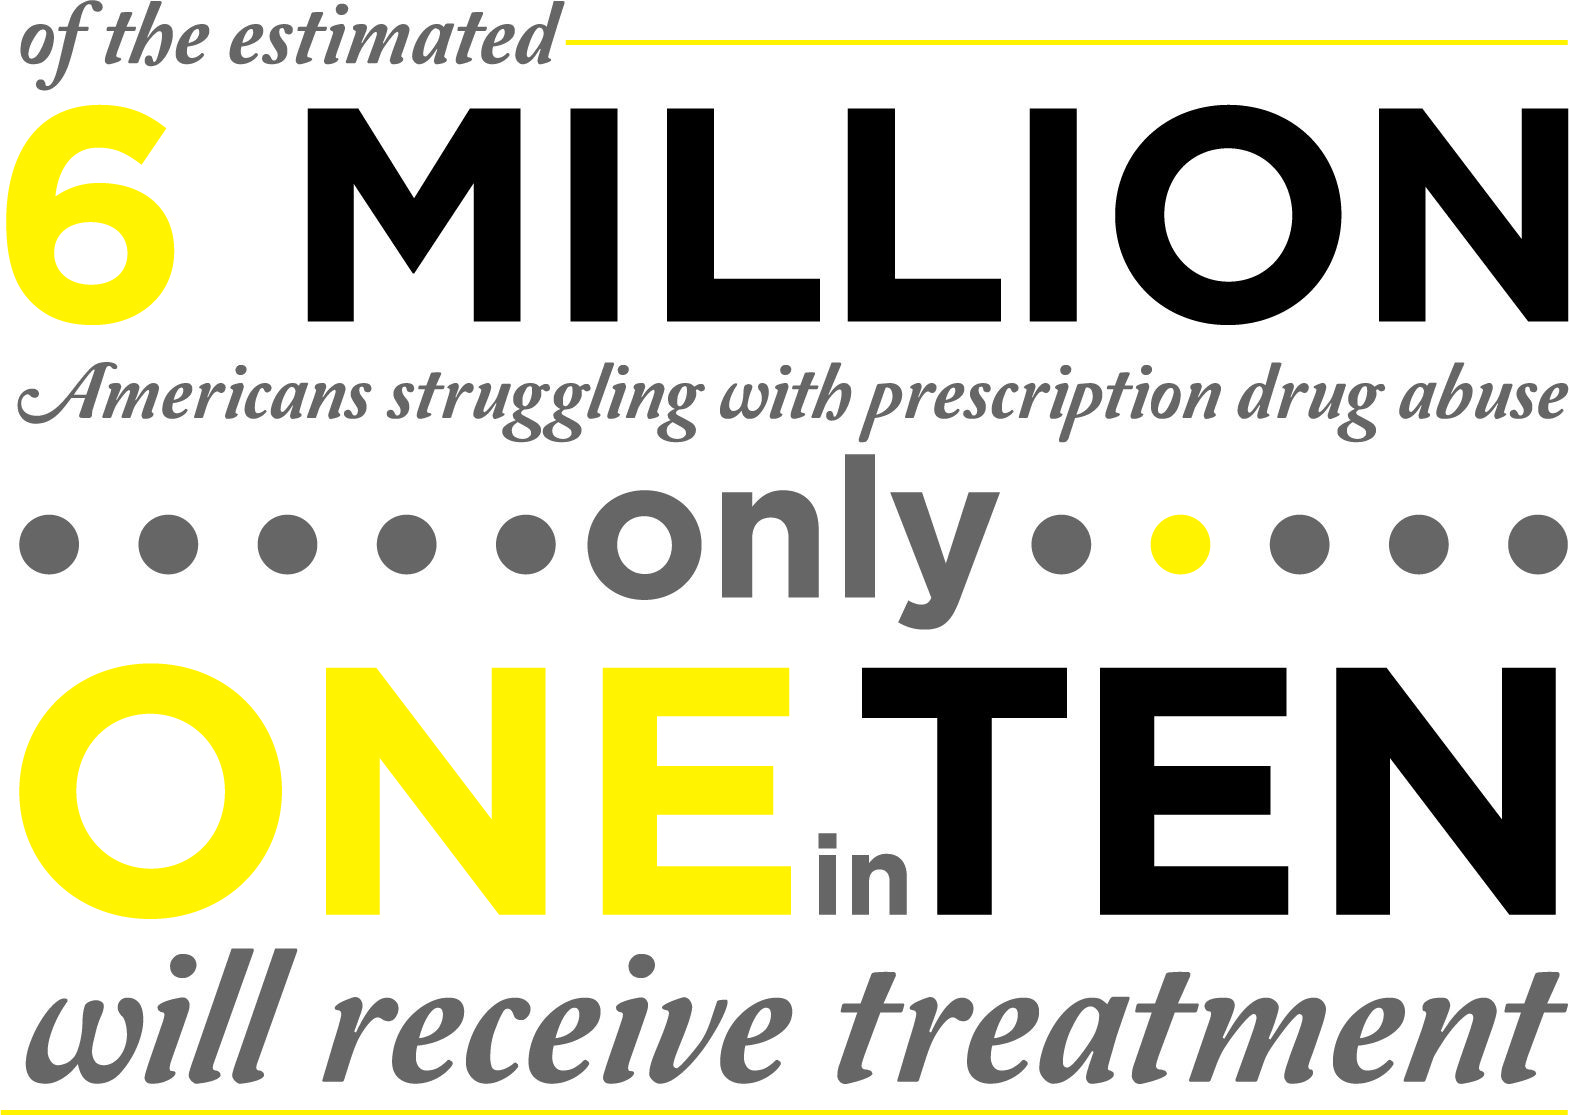 6 Million Americans Struggling with Prescription Drug Abuse and Addiction. Only 1 in 10 will get treatment.